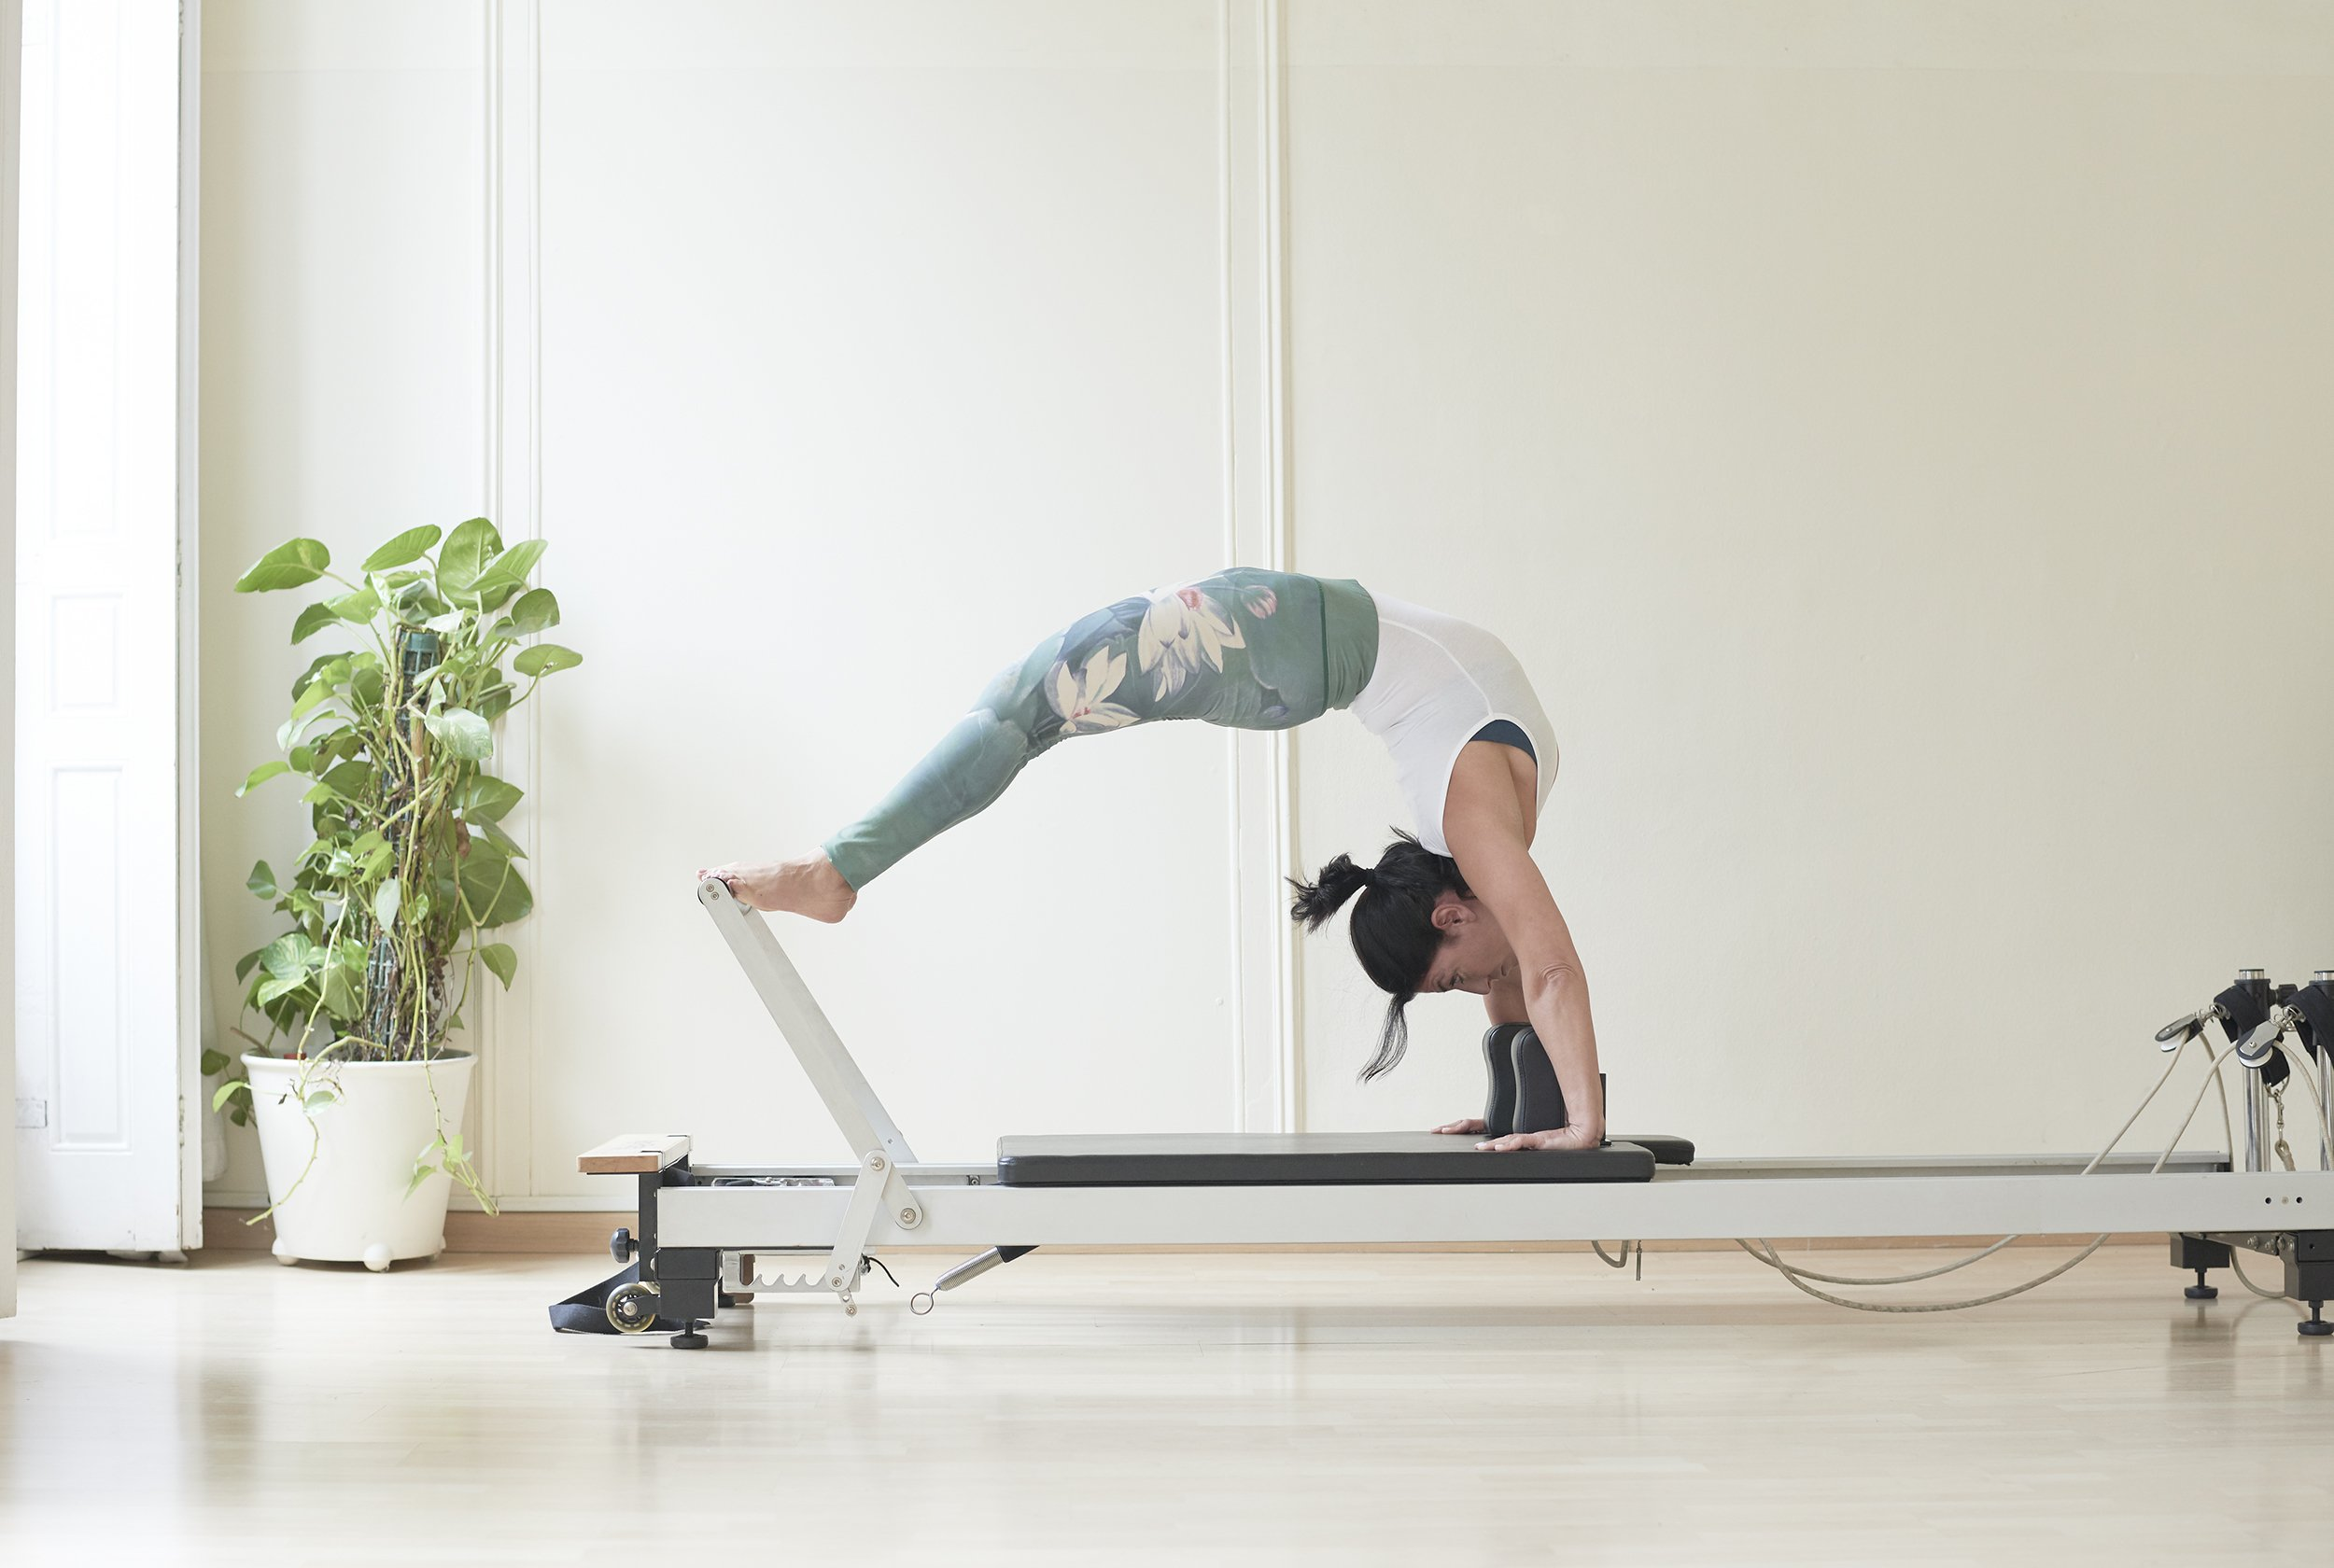 Pilates as a physical training method